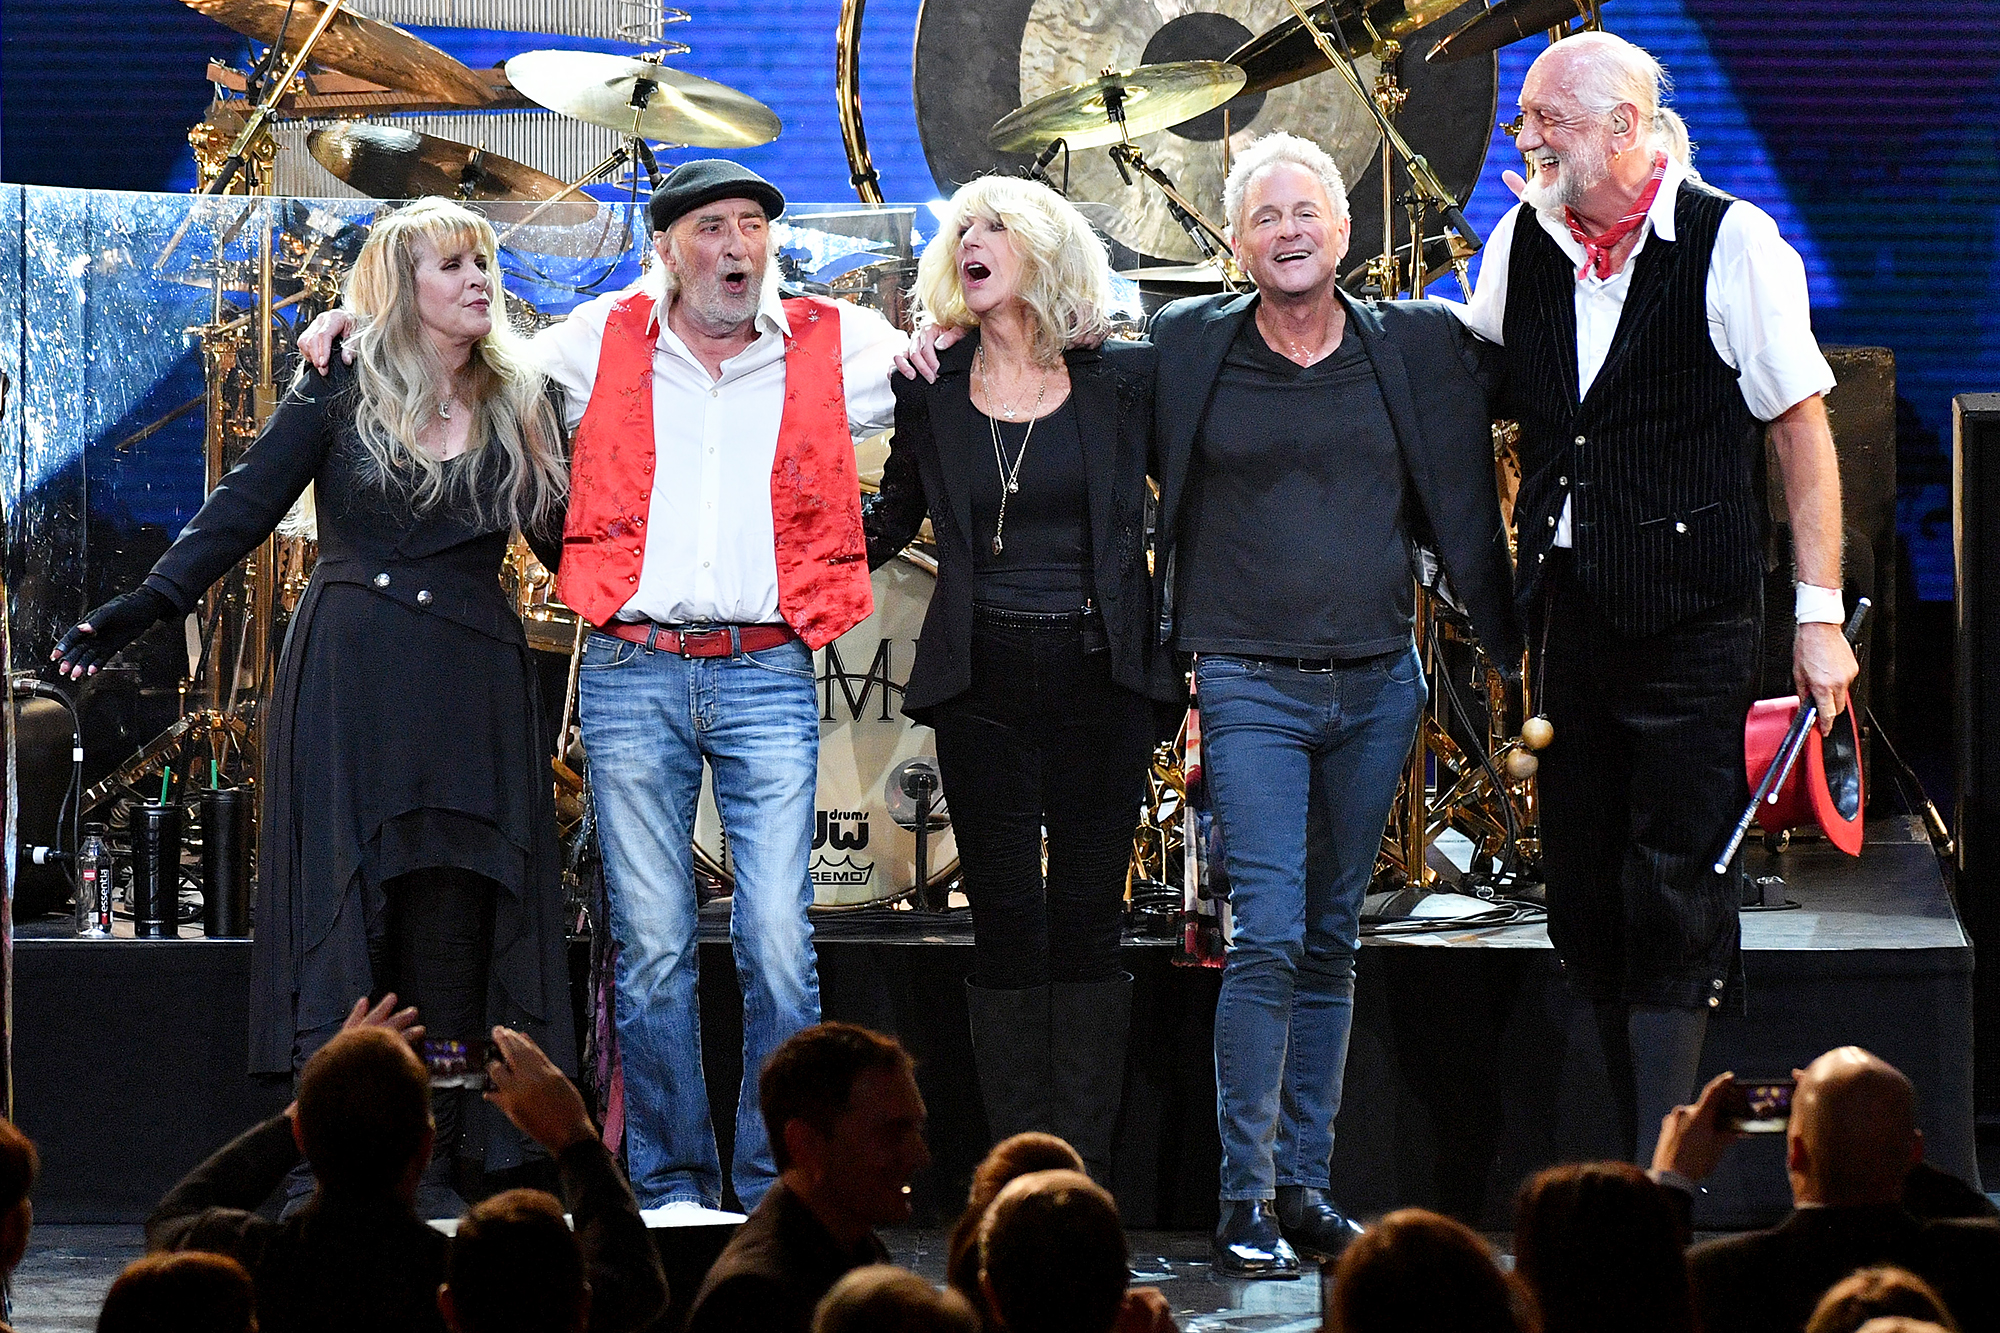 Fleetwood Mac to play Atlantic City in 2019